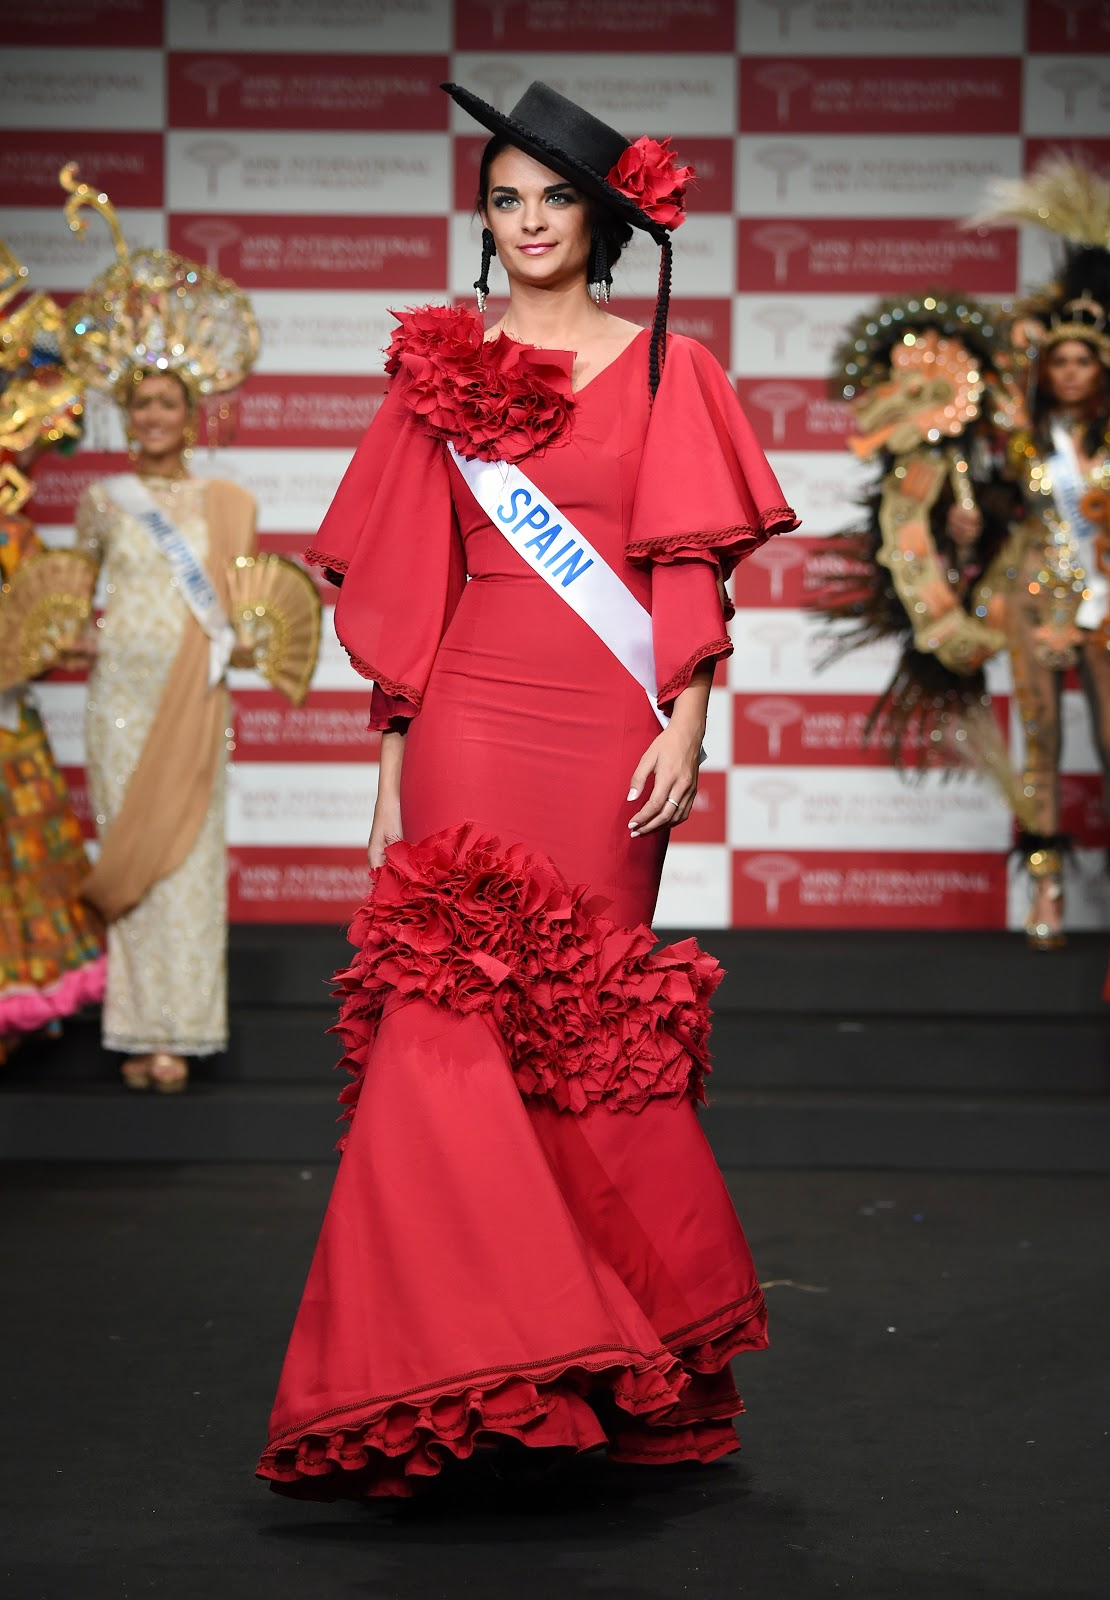 Miss International Beauty Pageant 2014 in Pictures